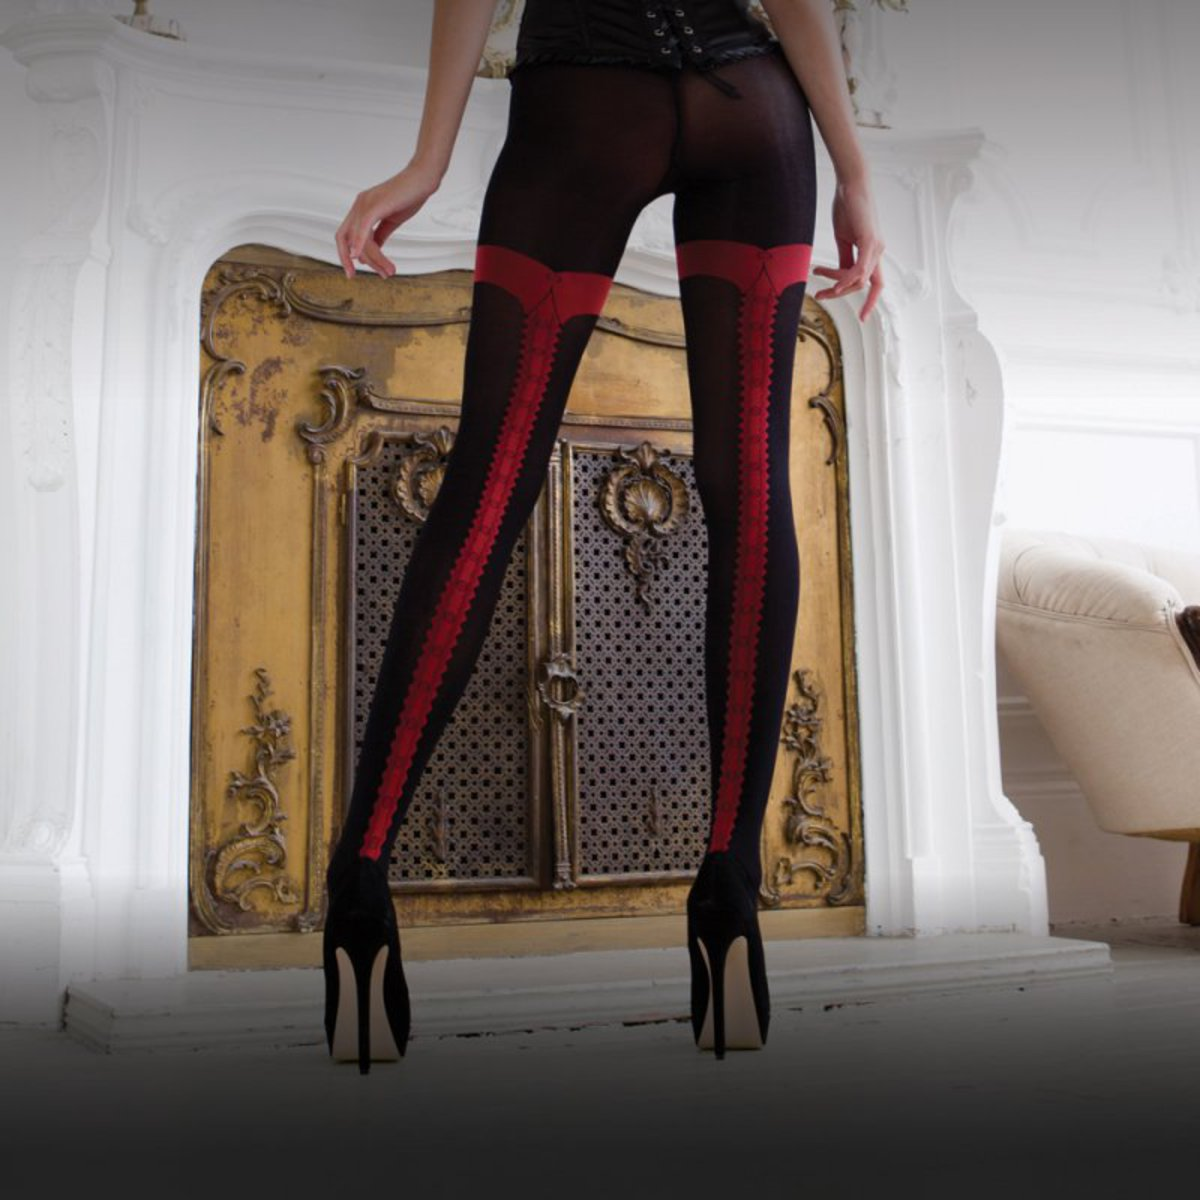 punčocháče LEGWEAR - charley opaque - black with red seam - OHVCTG2BL1 L